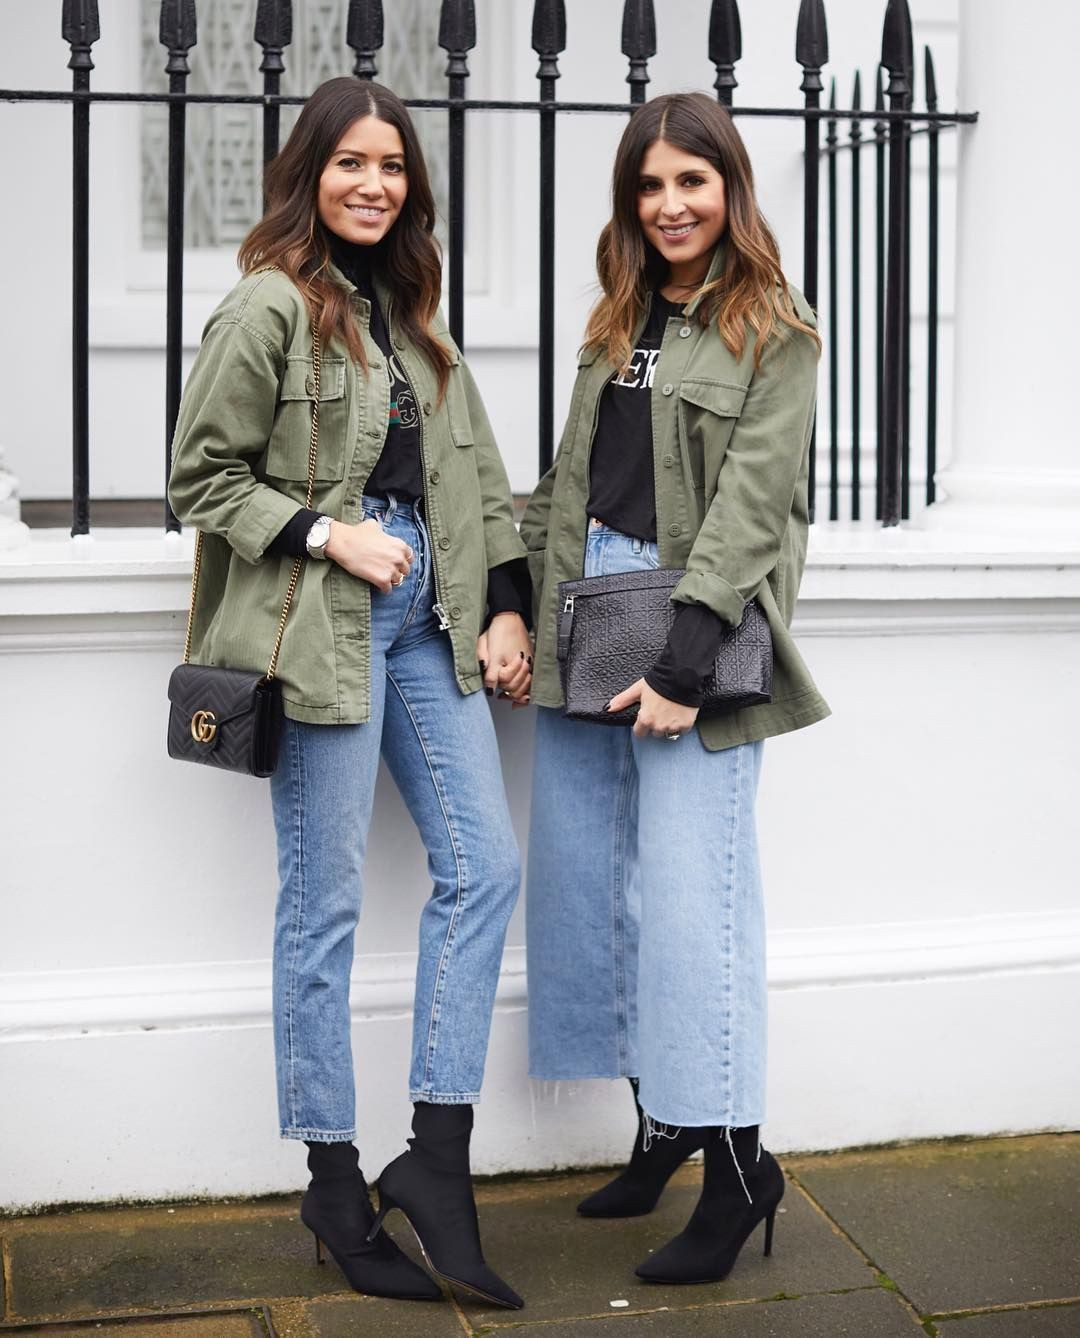 Khaki outfit style with denim, parka, jeans